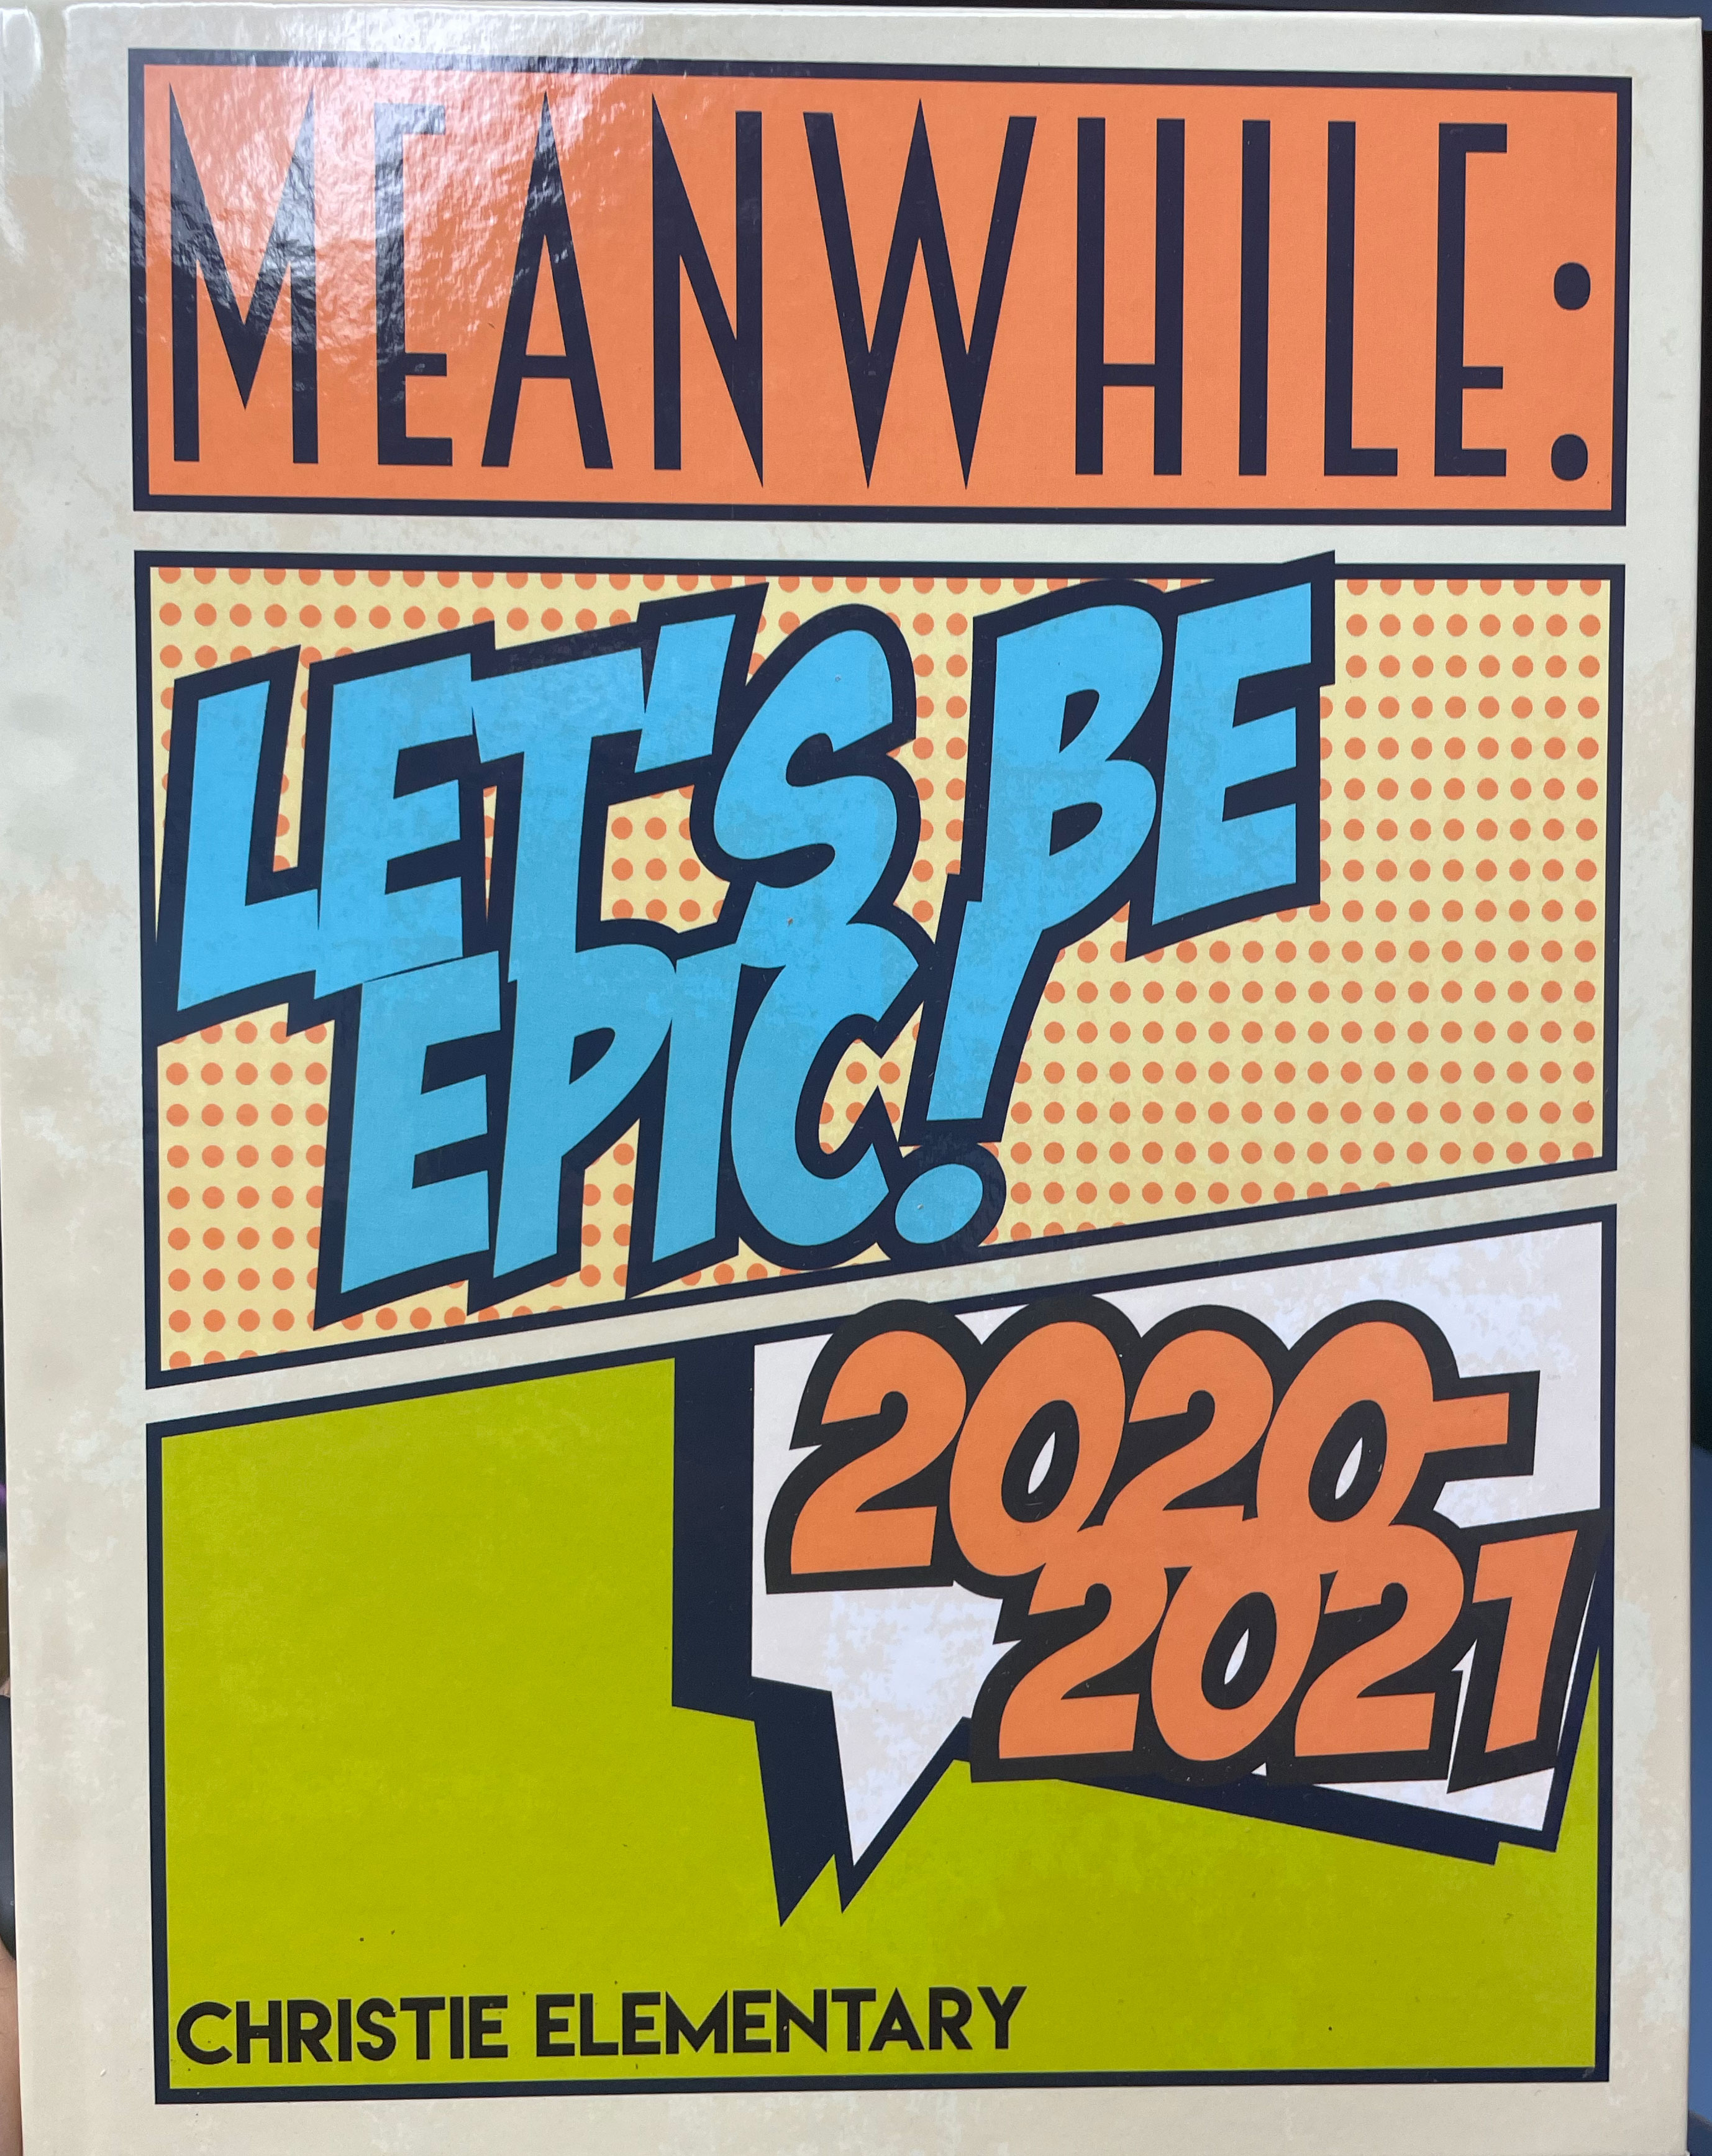 2020-21 Yearbook